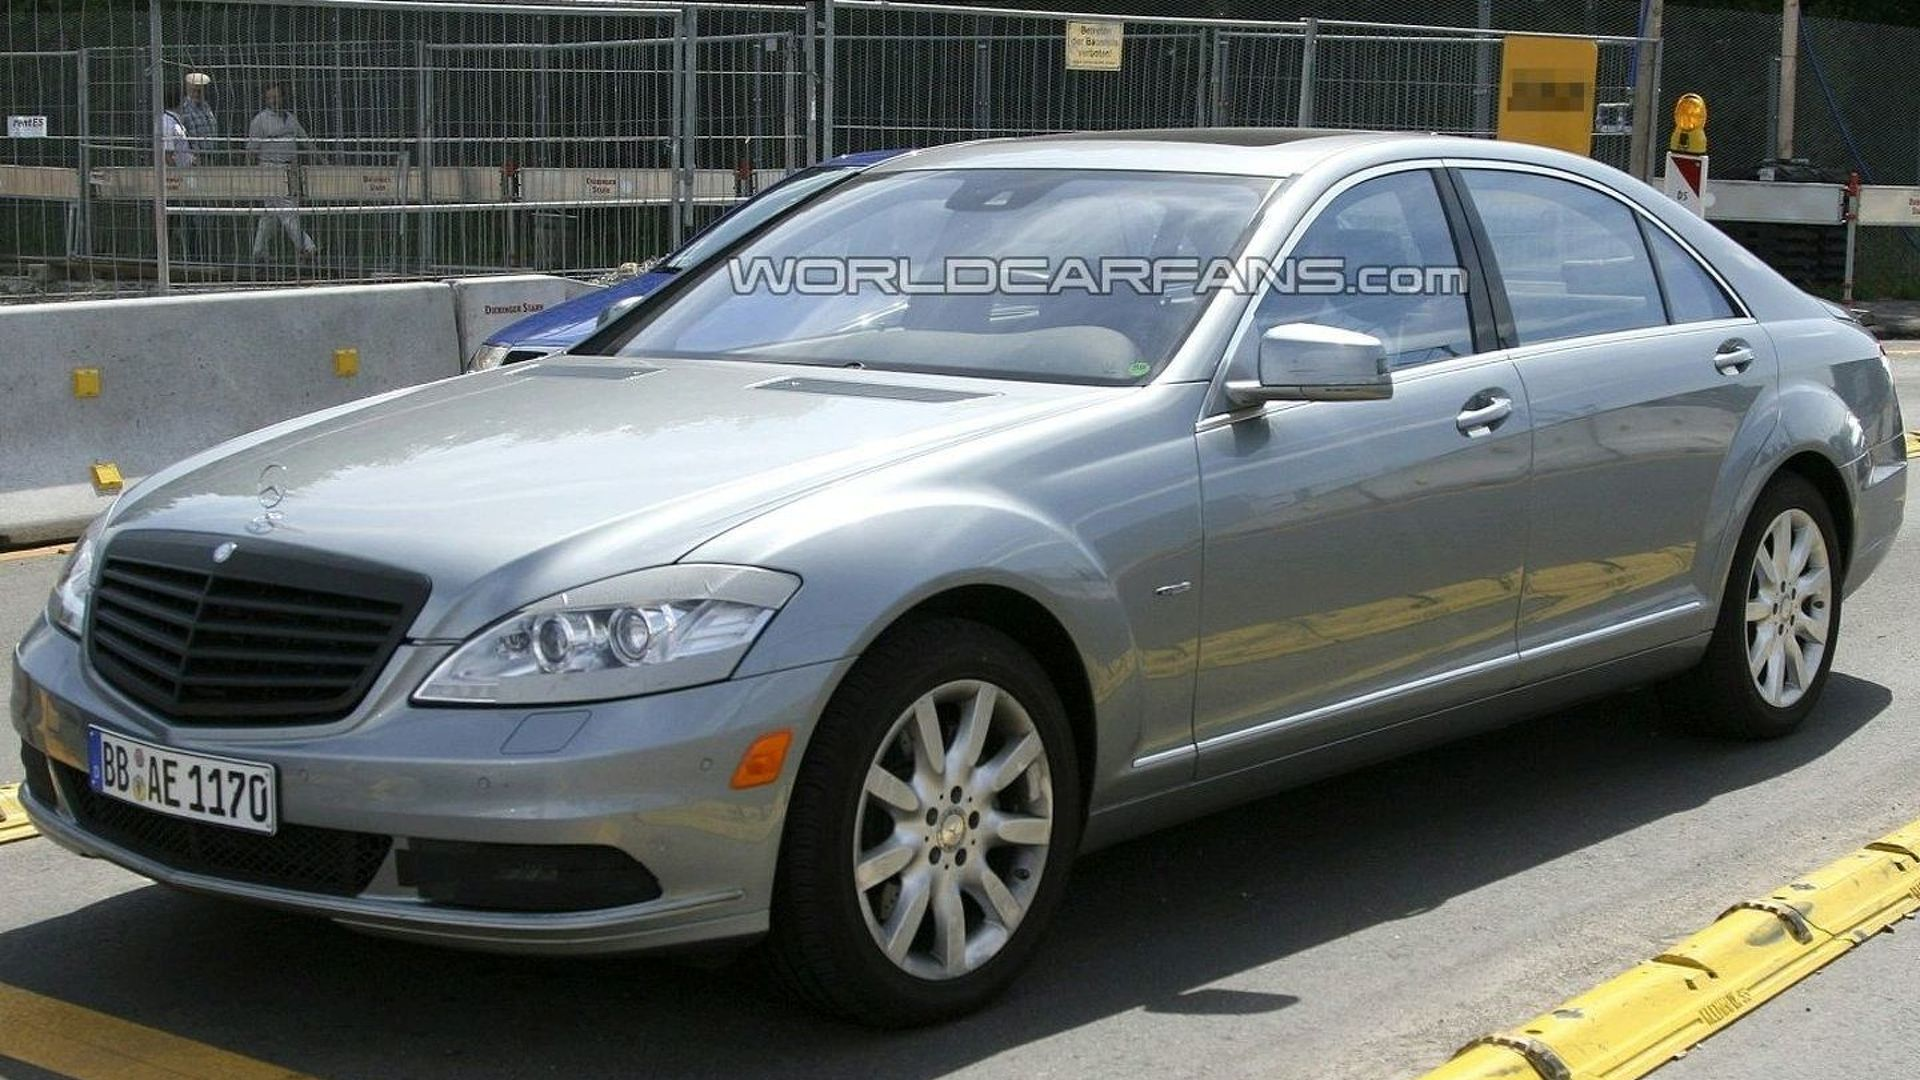 Best Shots Yet of Mercedes S-Class Facelift